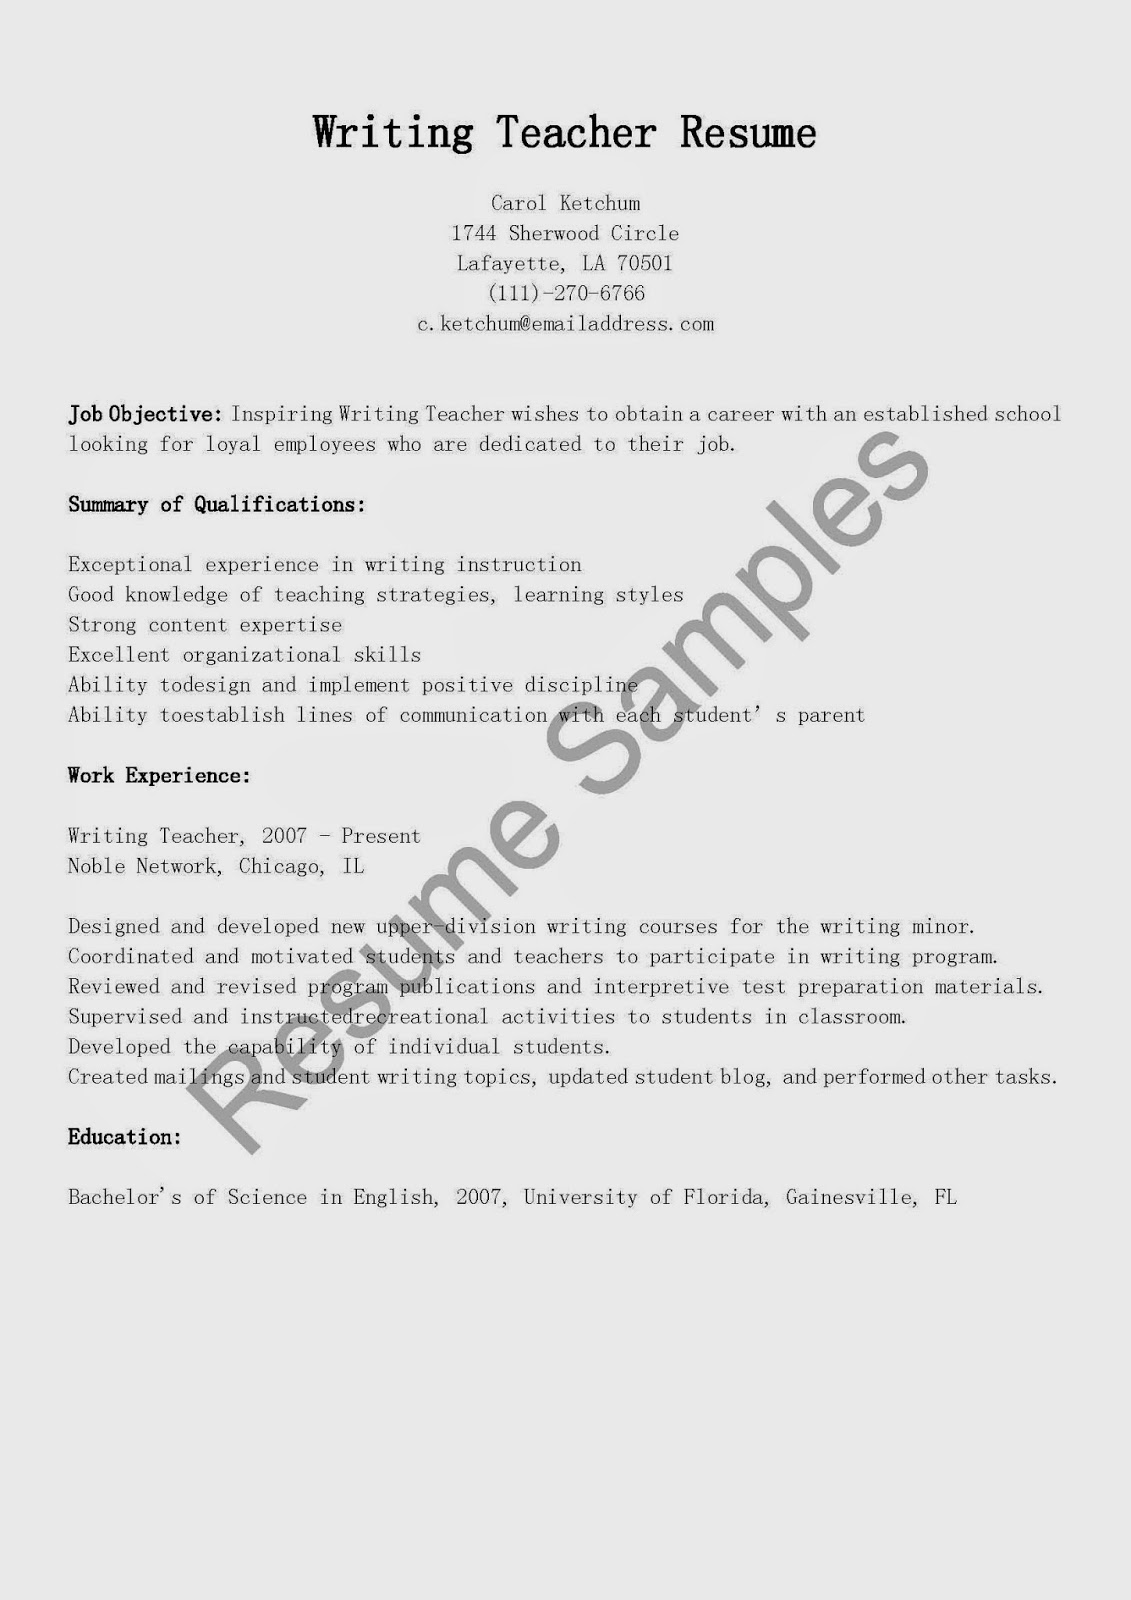 cv format for experienced teachers free download teacher cover letter example best assistant teacher. Resume Example. Resume CV Cover Letter